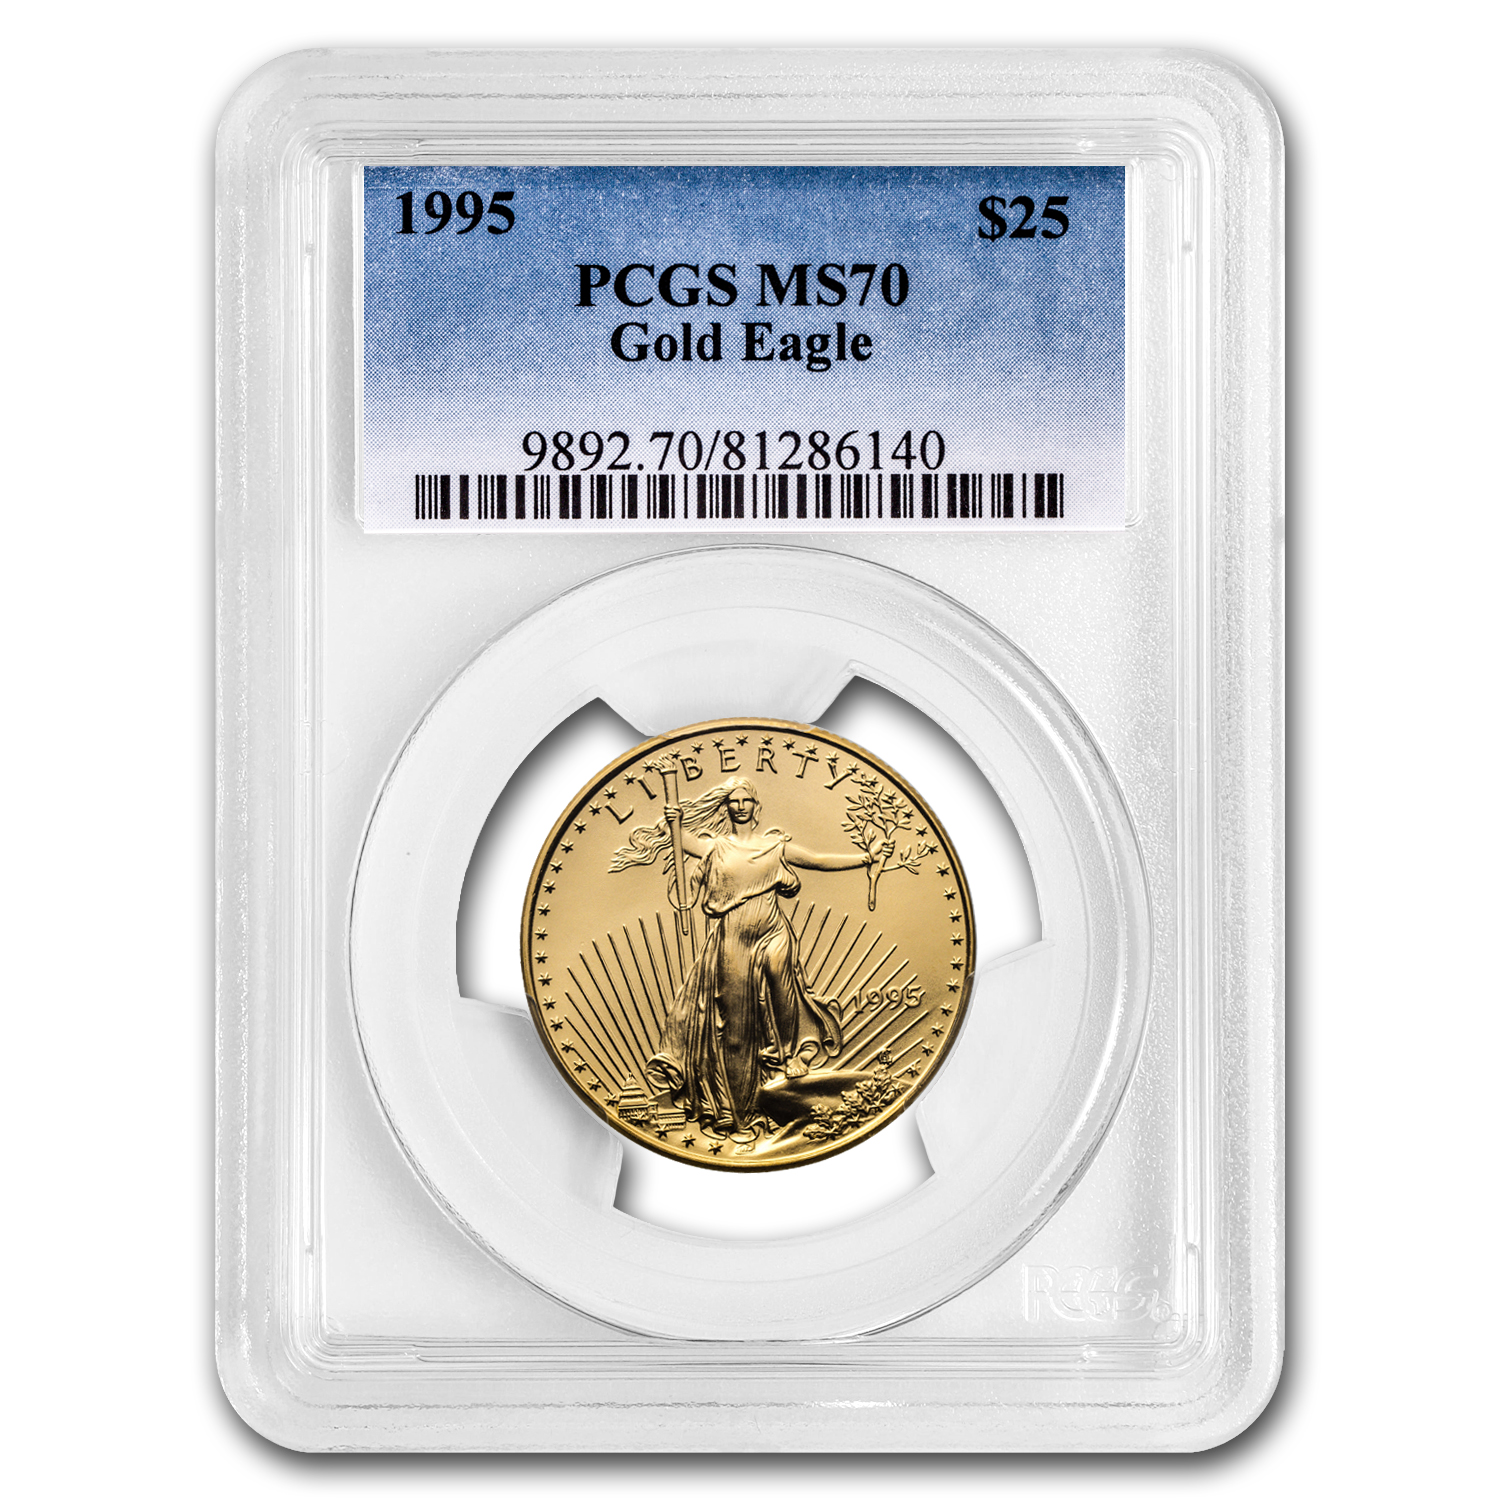 1995 1/2 oz Gold American Eagle MS-70 PCGS (Registry Set)